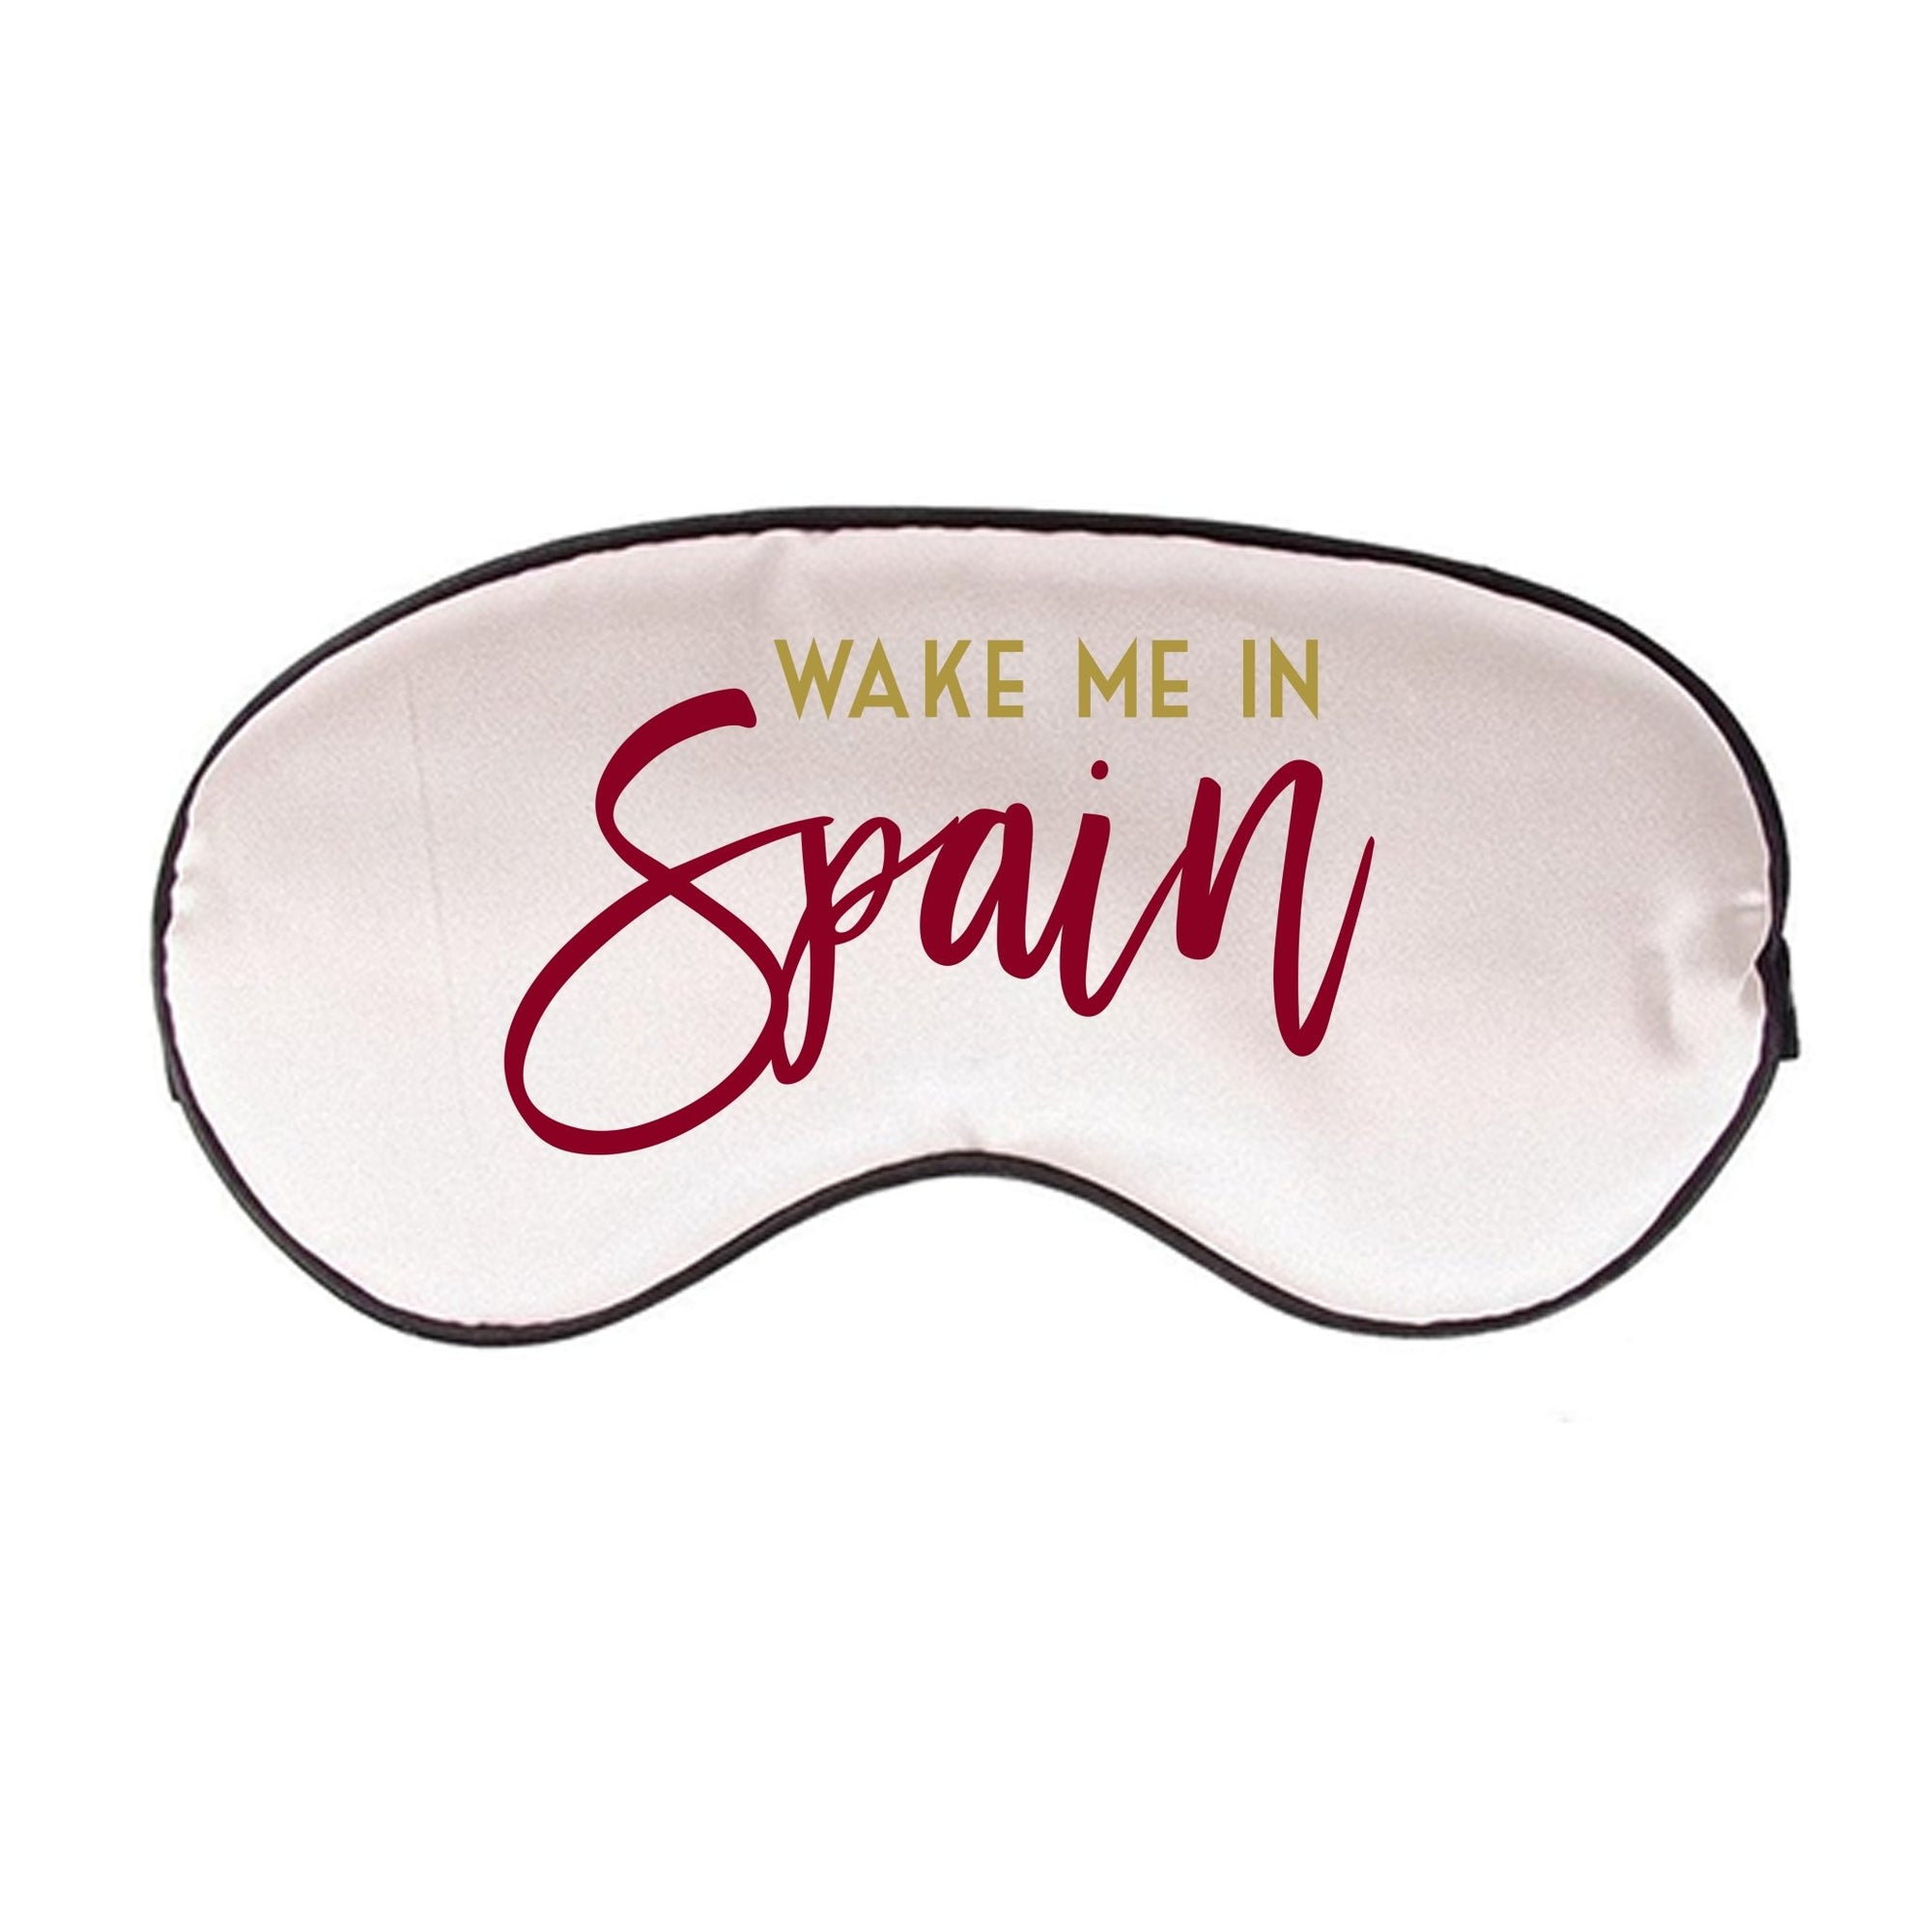 Wake Me In Spain Sleep Mask